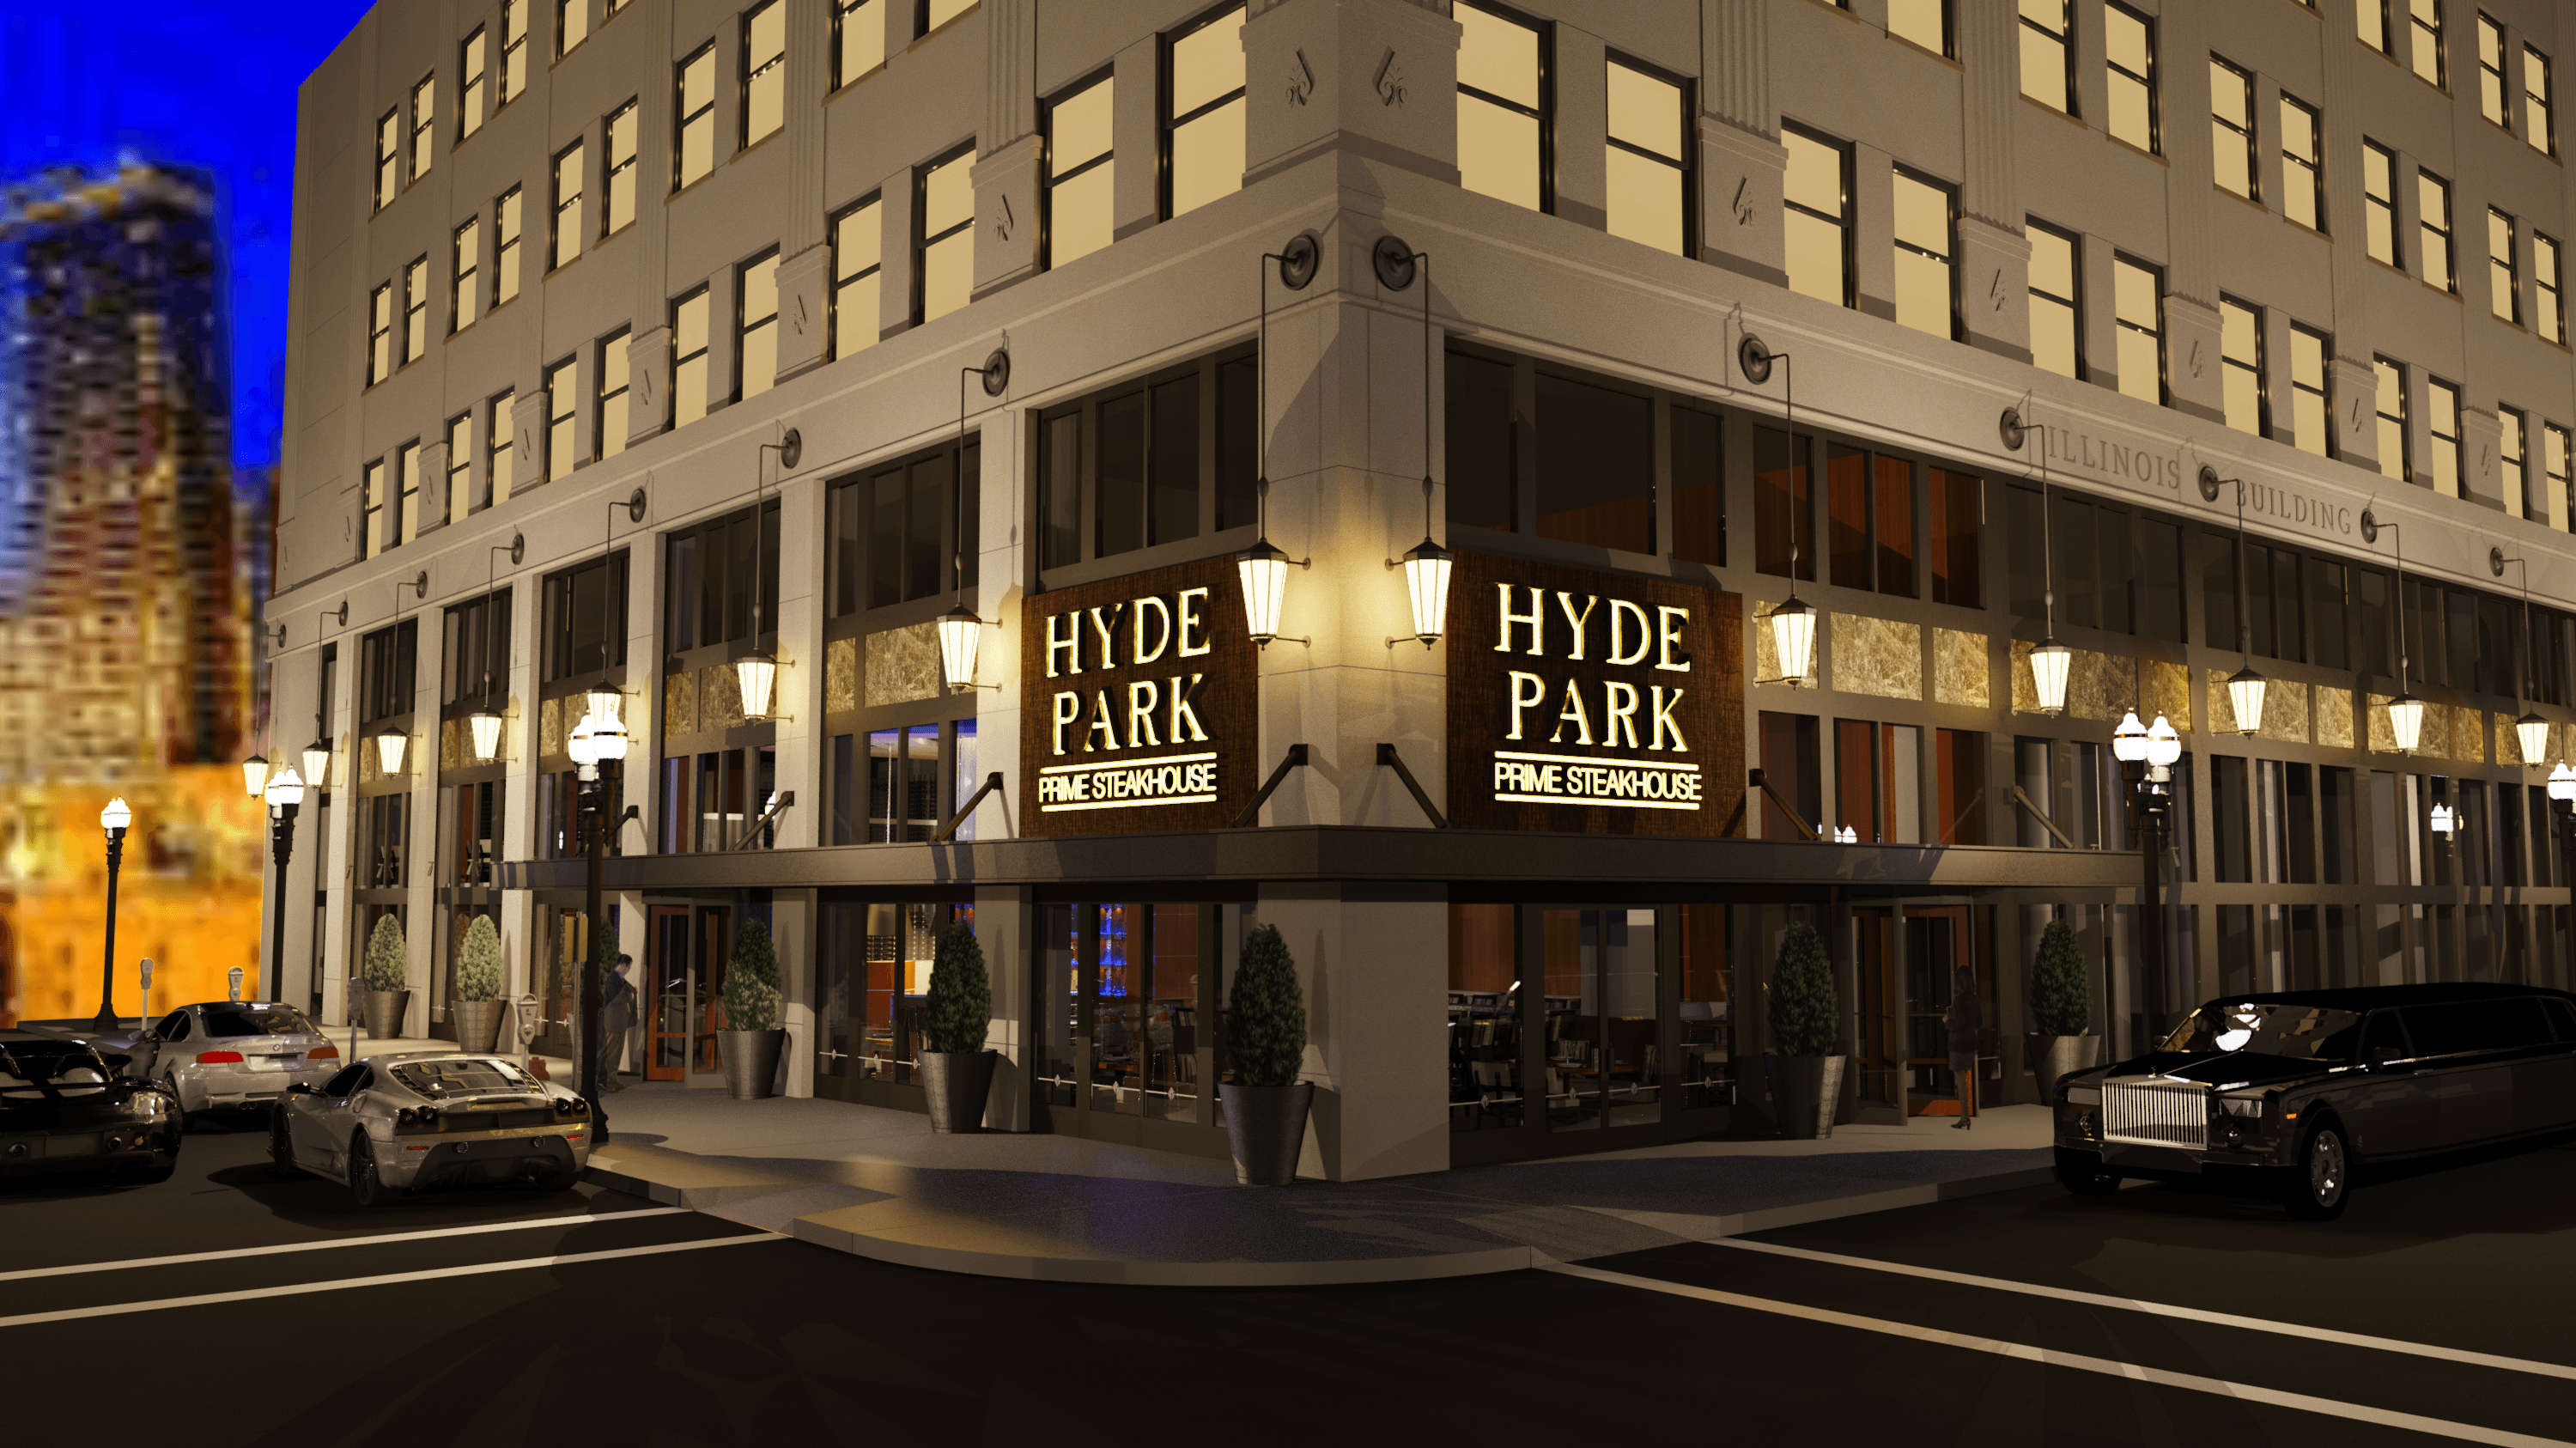 Hyde Park Prime Steakhouse Set For Downtown Indy S Illinois Building Development Keystone Construction And Realty Group